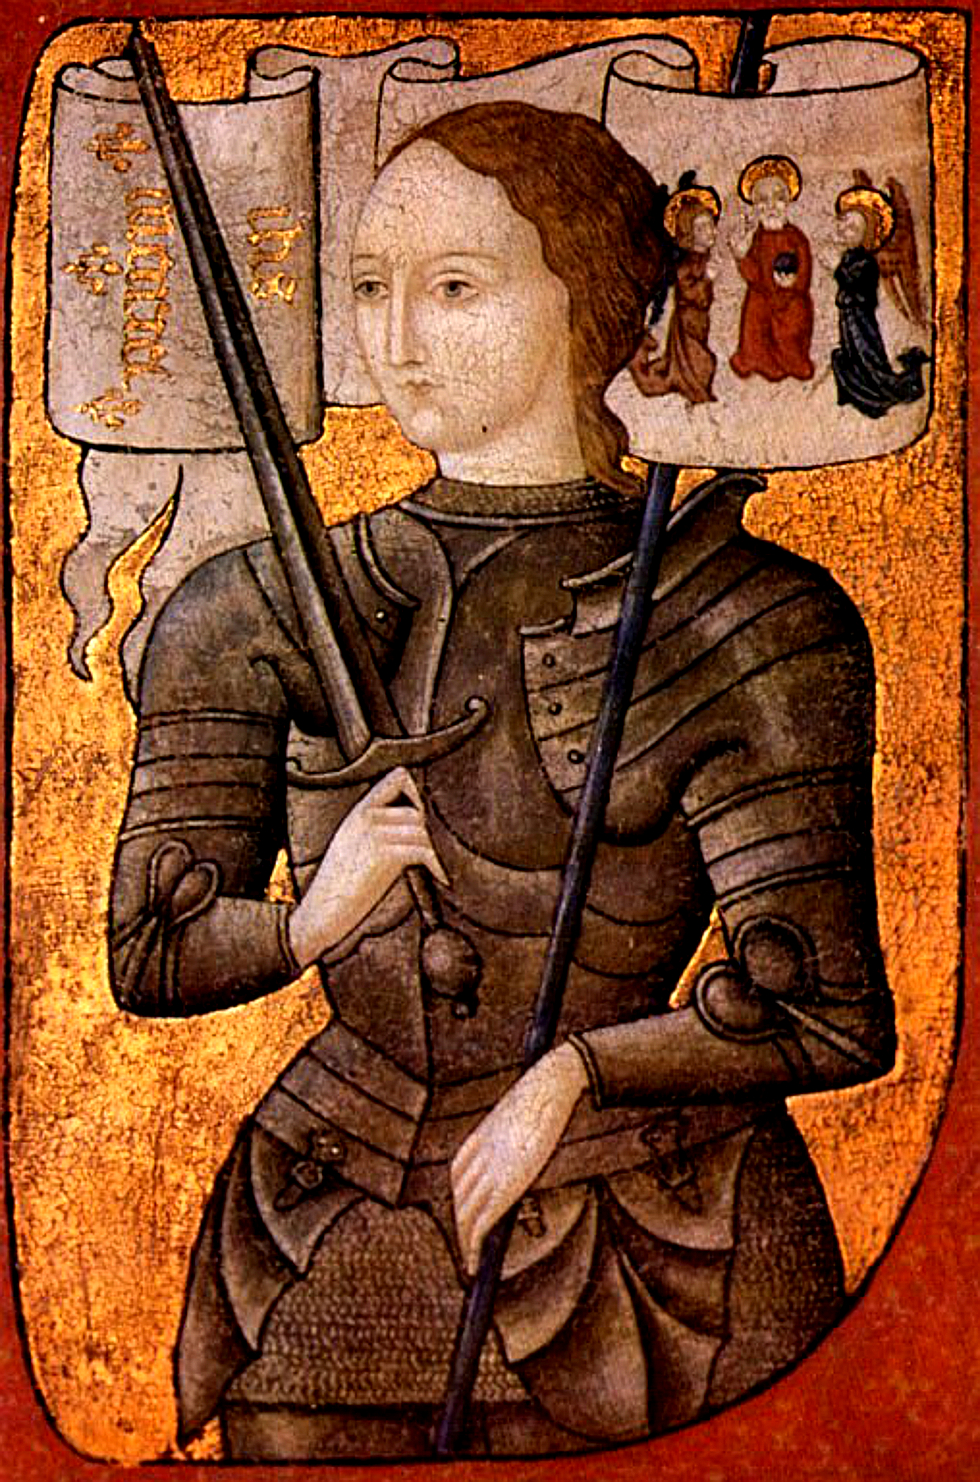 Painting of Joan of Arc, produced between 1450-1500 (from 20-70 years after her death).